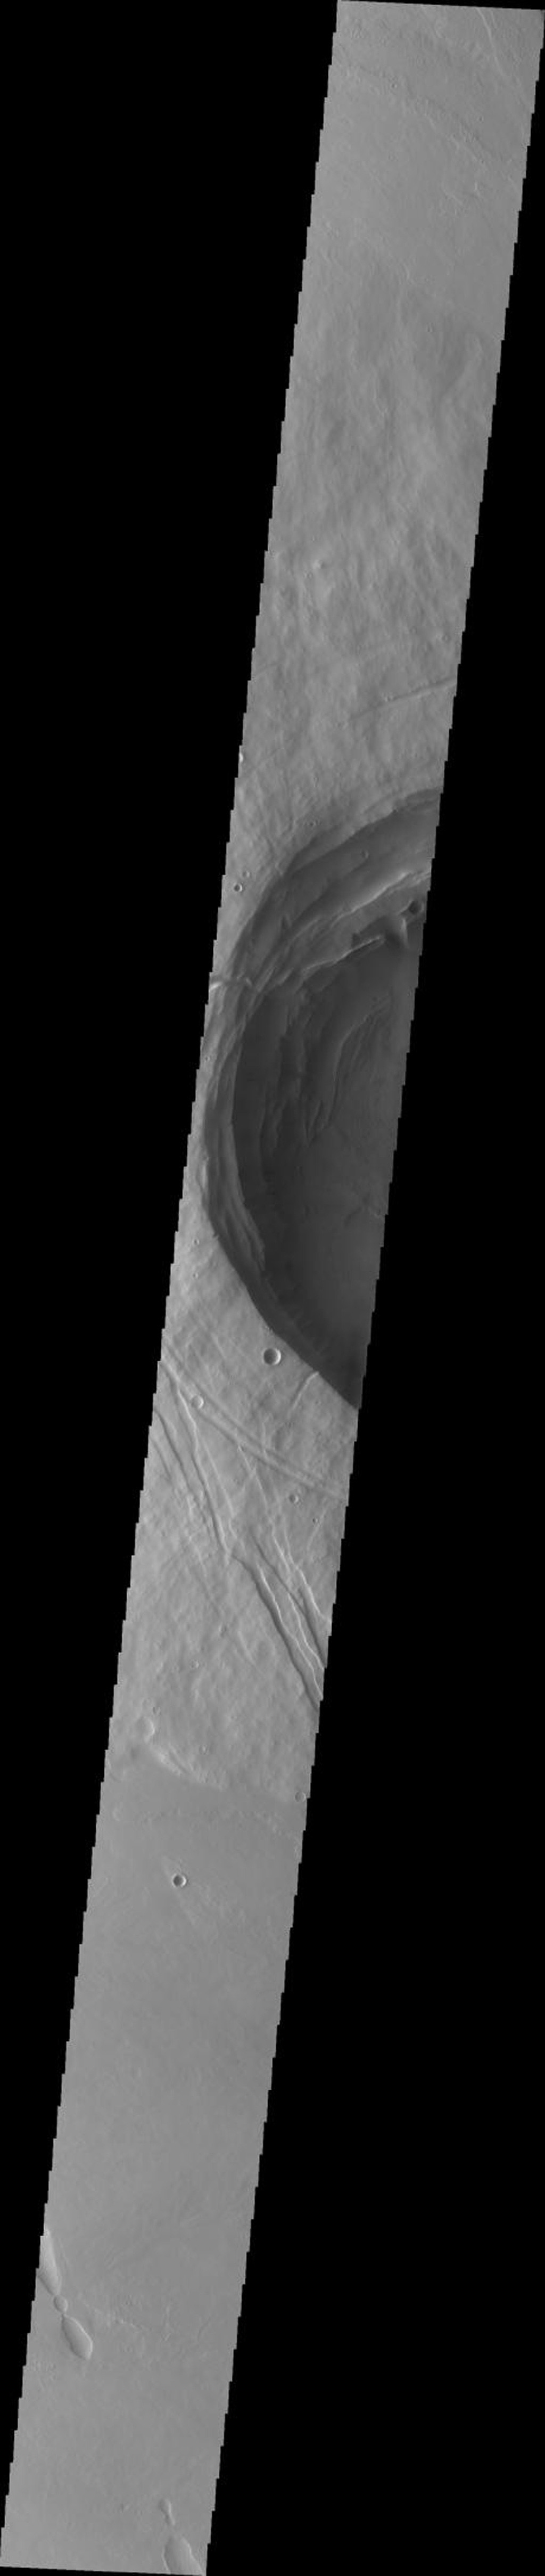 This image from NASA's Mars Odyssey spacecraft shows Biblis Patera on Mars. Note the large size and depth of the summit caldera in relation to the size of the entire construct.